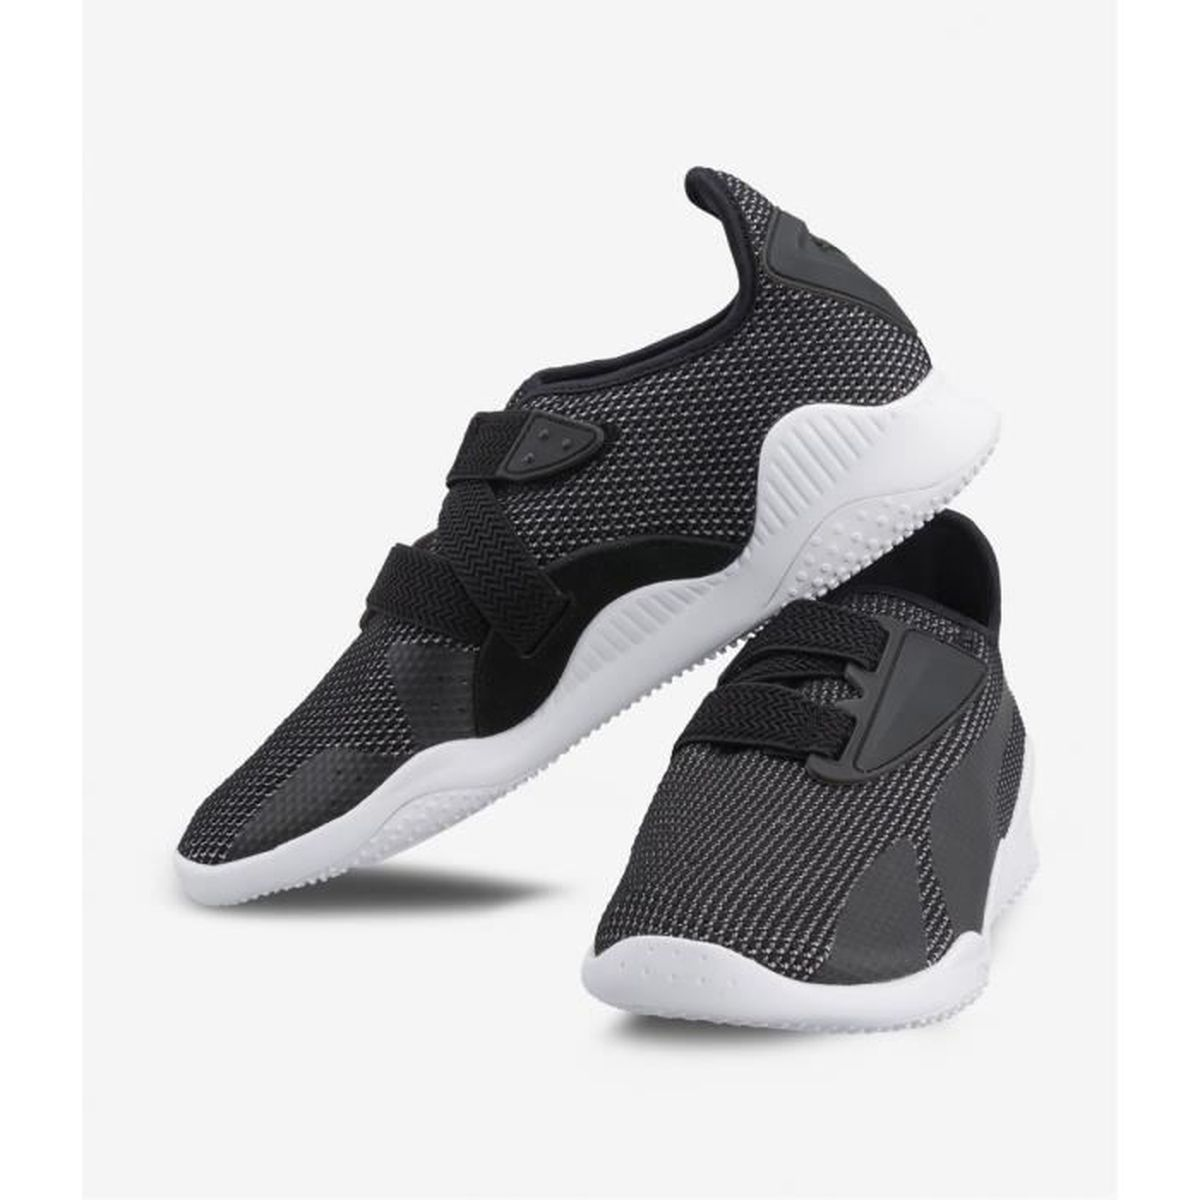 Baskets Puma MOSTRO BREATHE Black - SH362419-01-B PoRxu